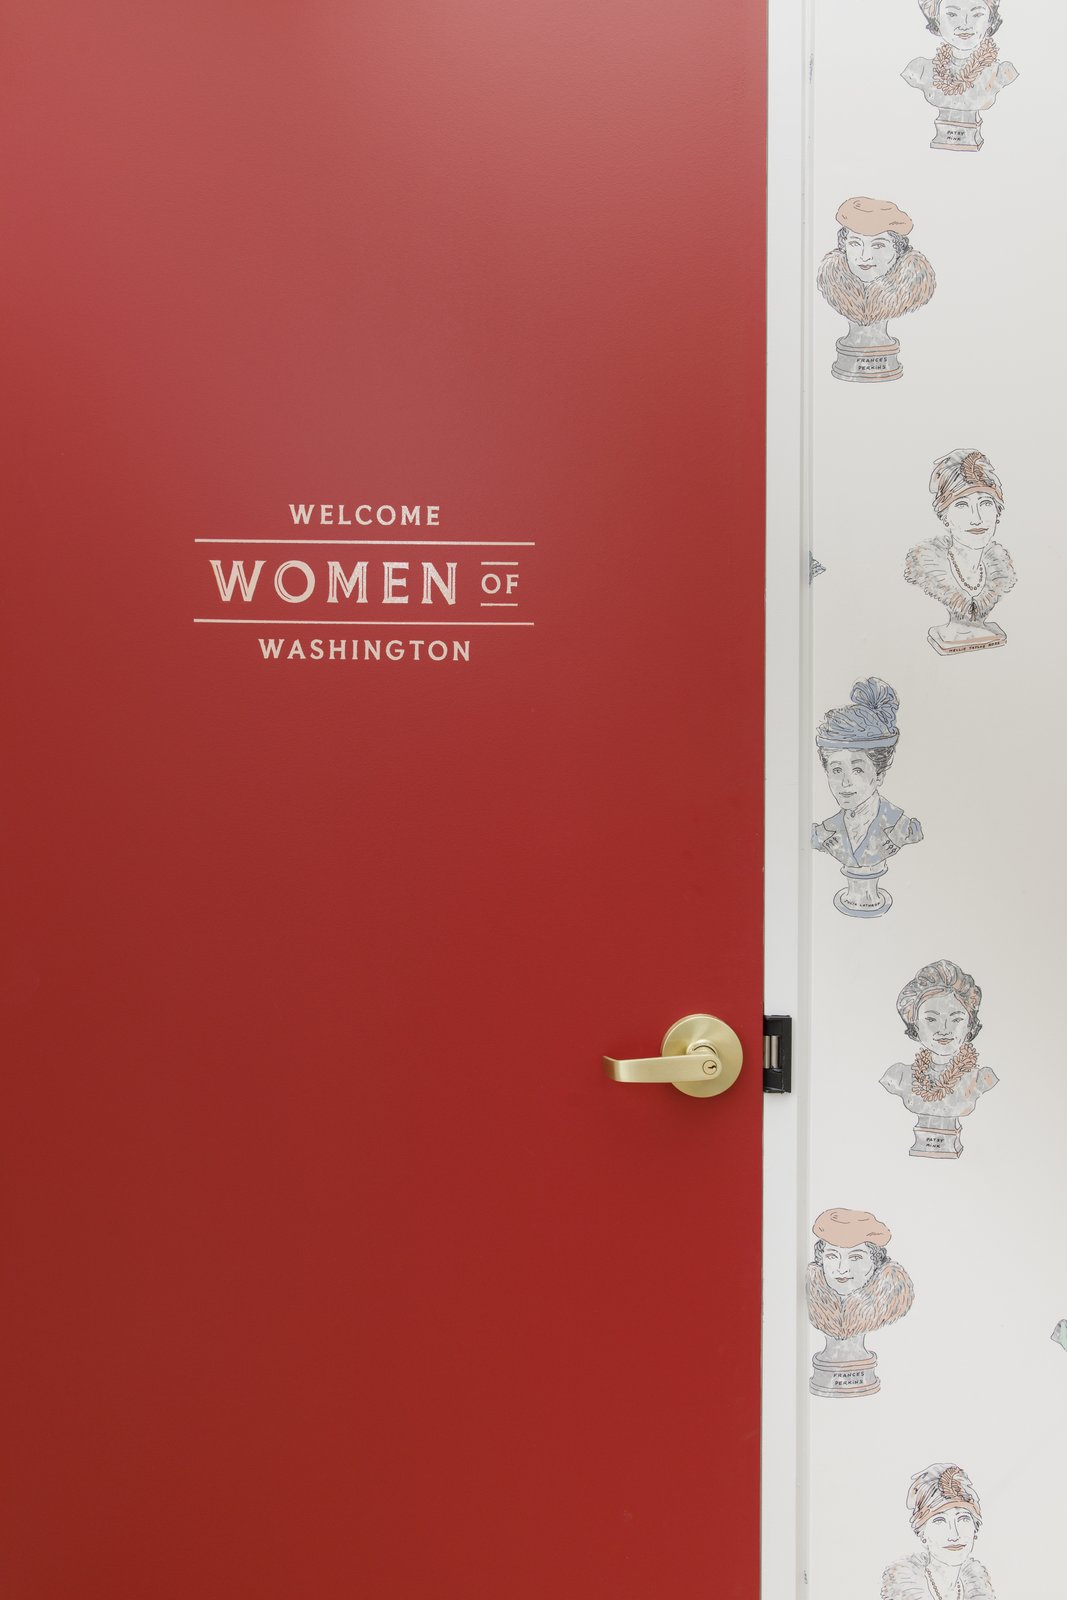 Doors, Wood, Interior, and Swing Door Type A red door at the entry welcomes members.  Photo 2 of 13 in Feast Your Eyes on Washington D.C.'s Newest Co-Working Space For Women